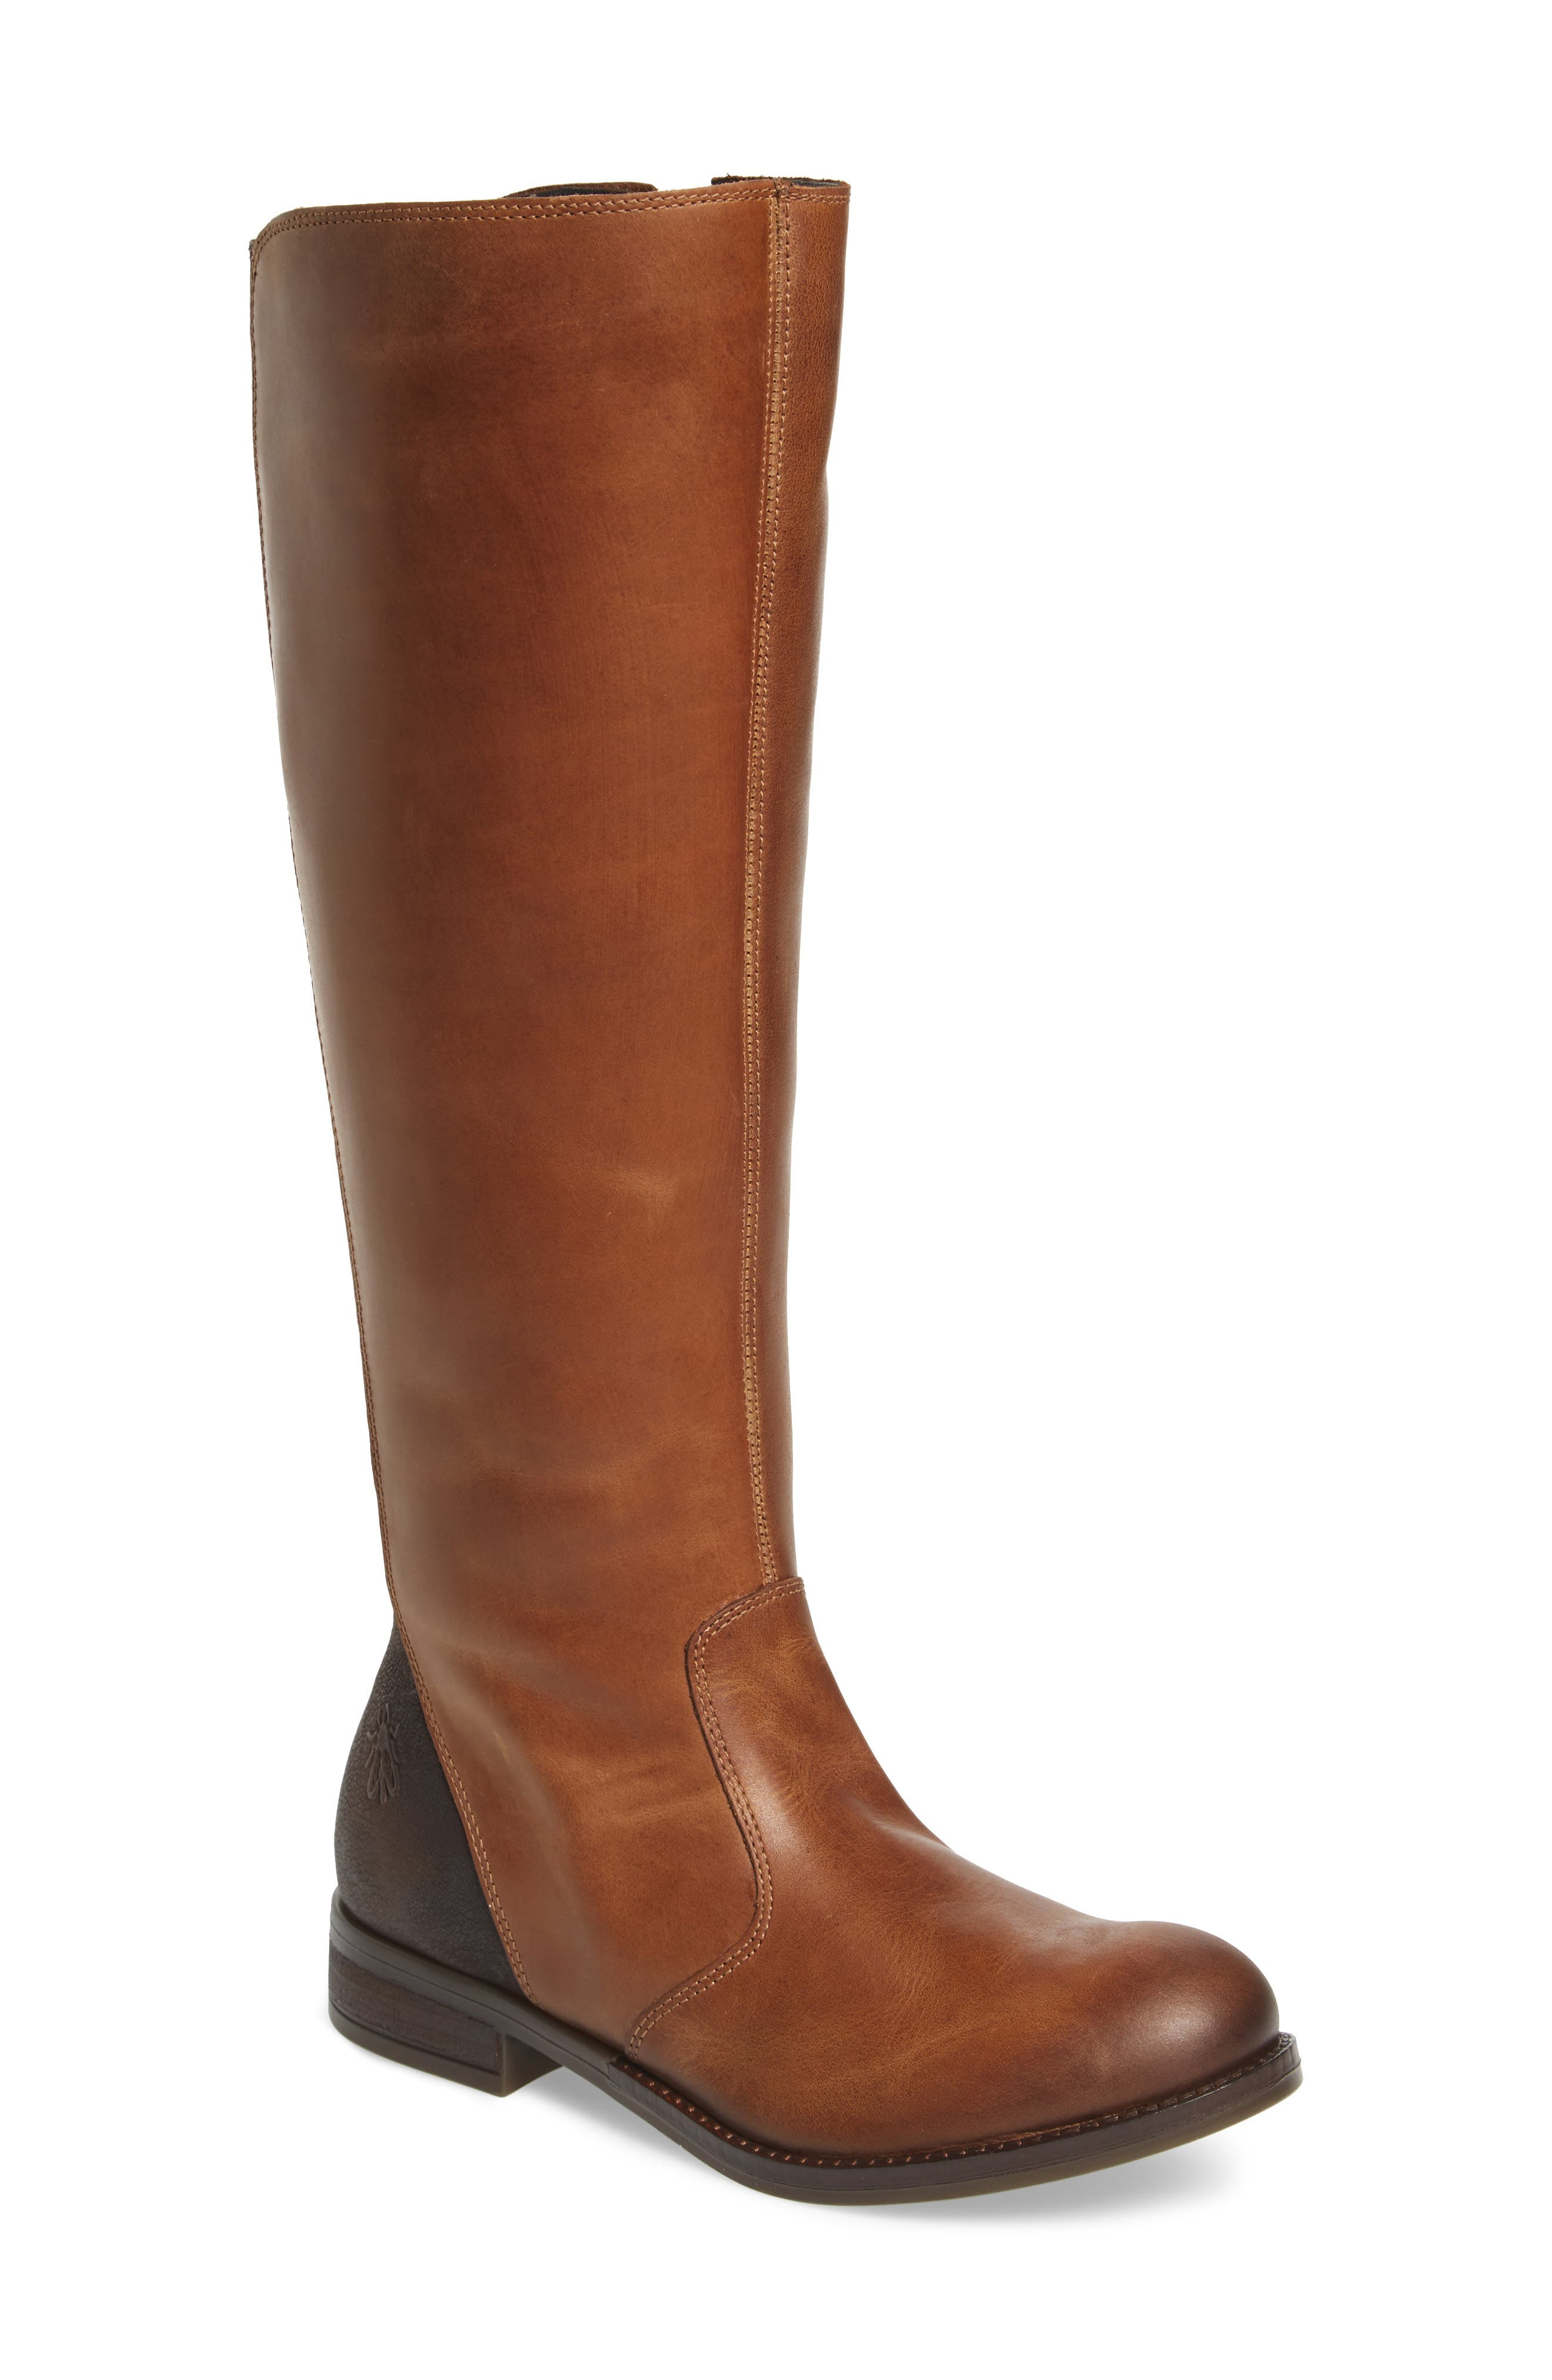 Alternate Image 1 Selected - Fly London Axil Elastic Back Riding Boot (Women)